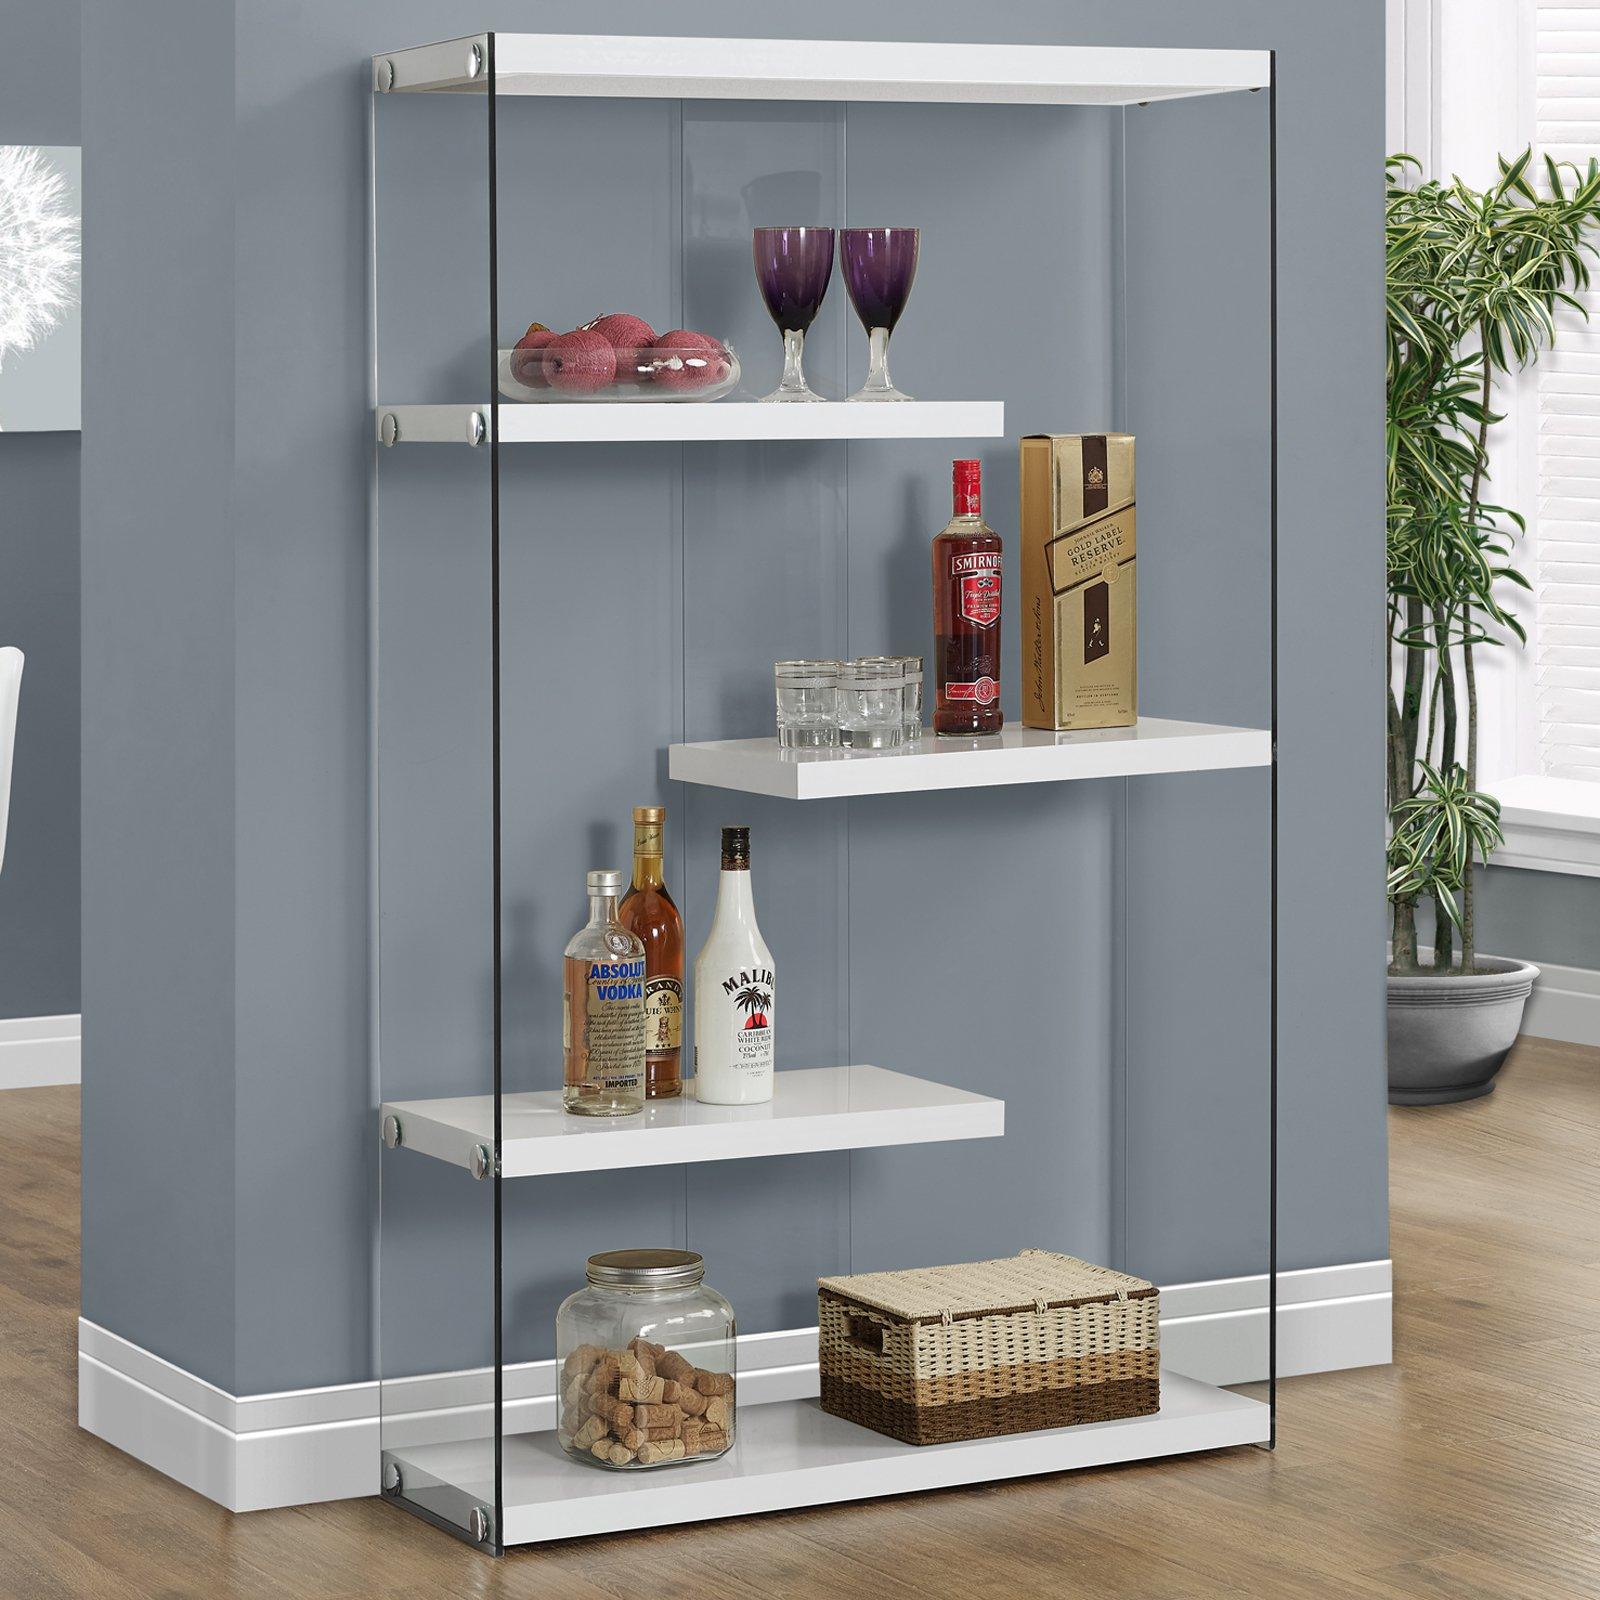 "Monarch Bookcase 60""H / Dark Taupe With Tempered Glass"